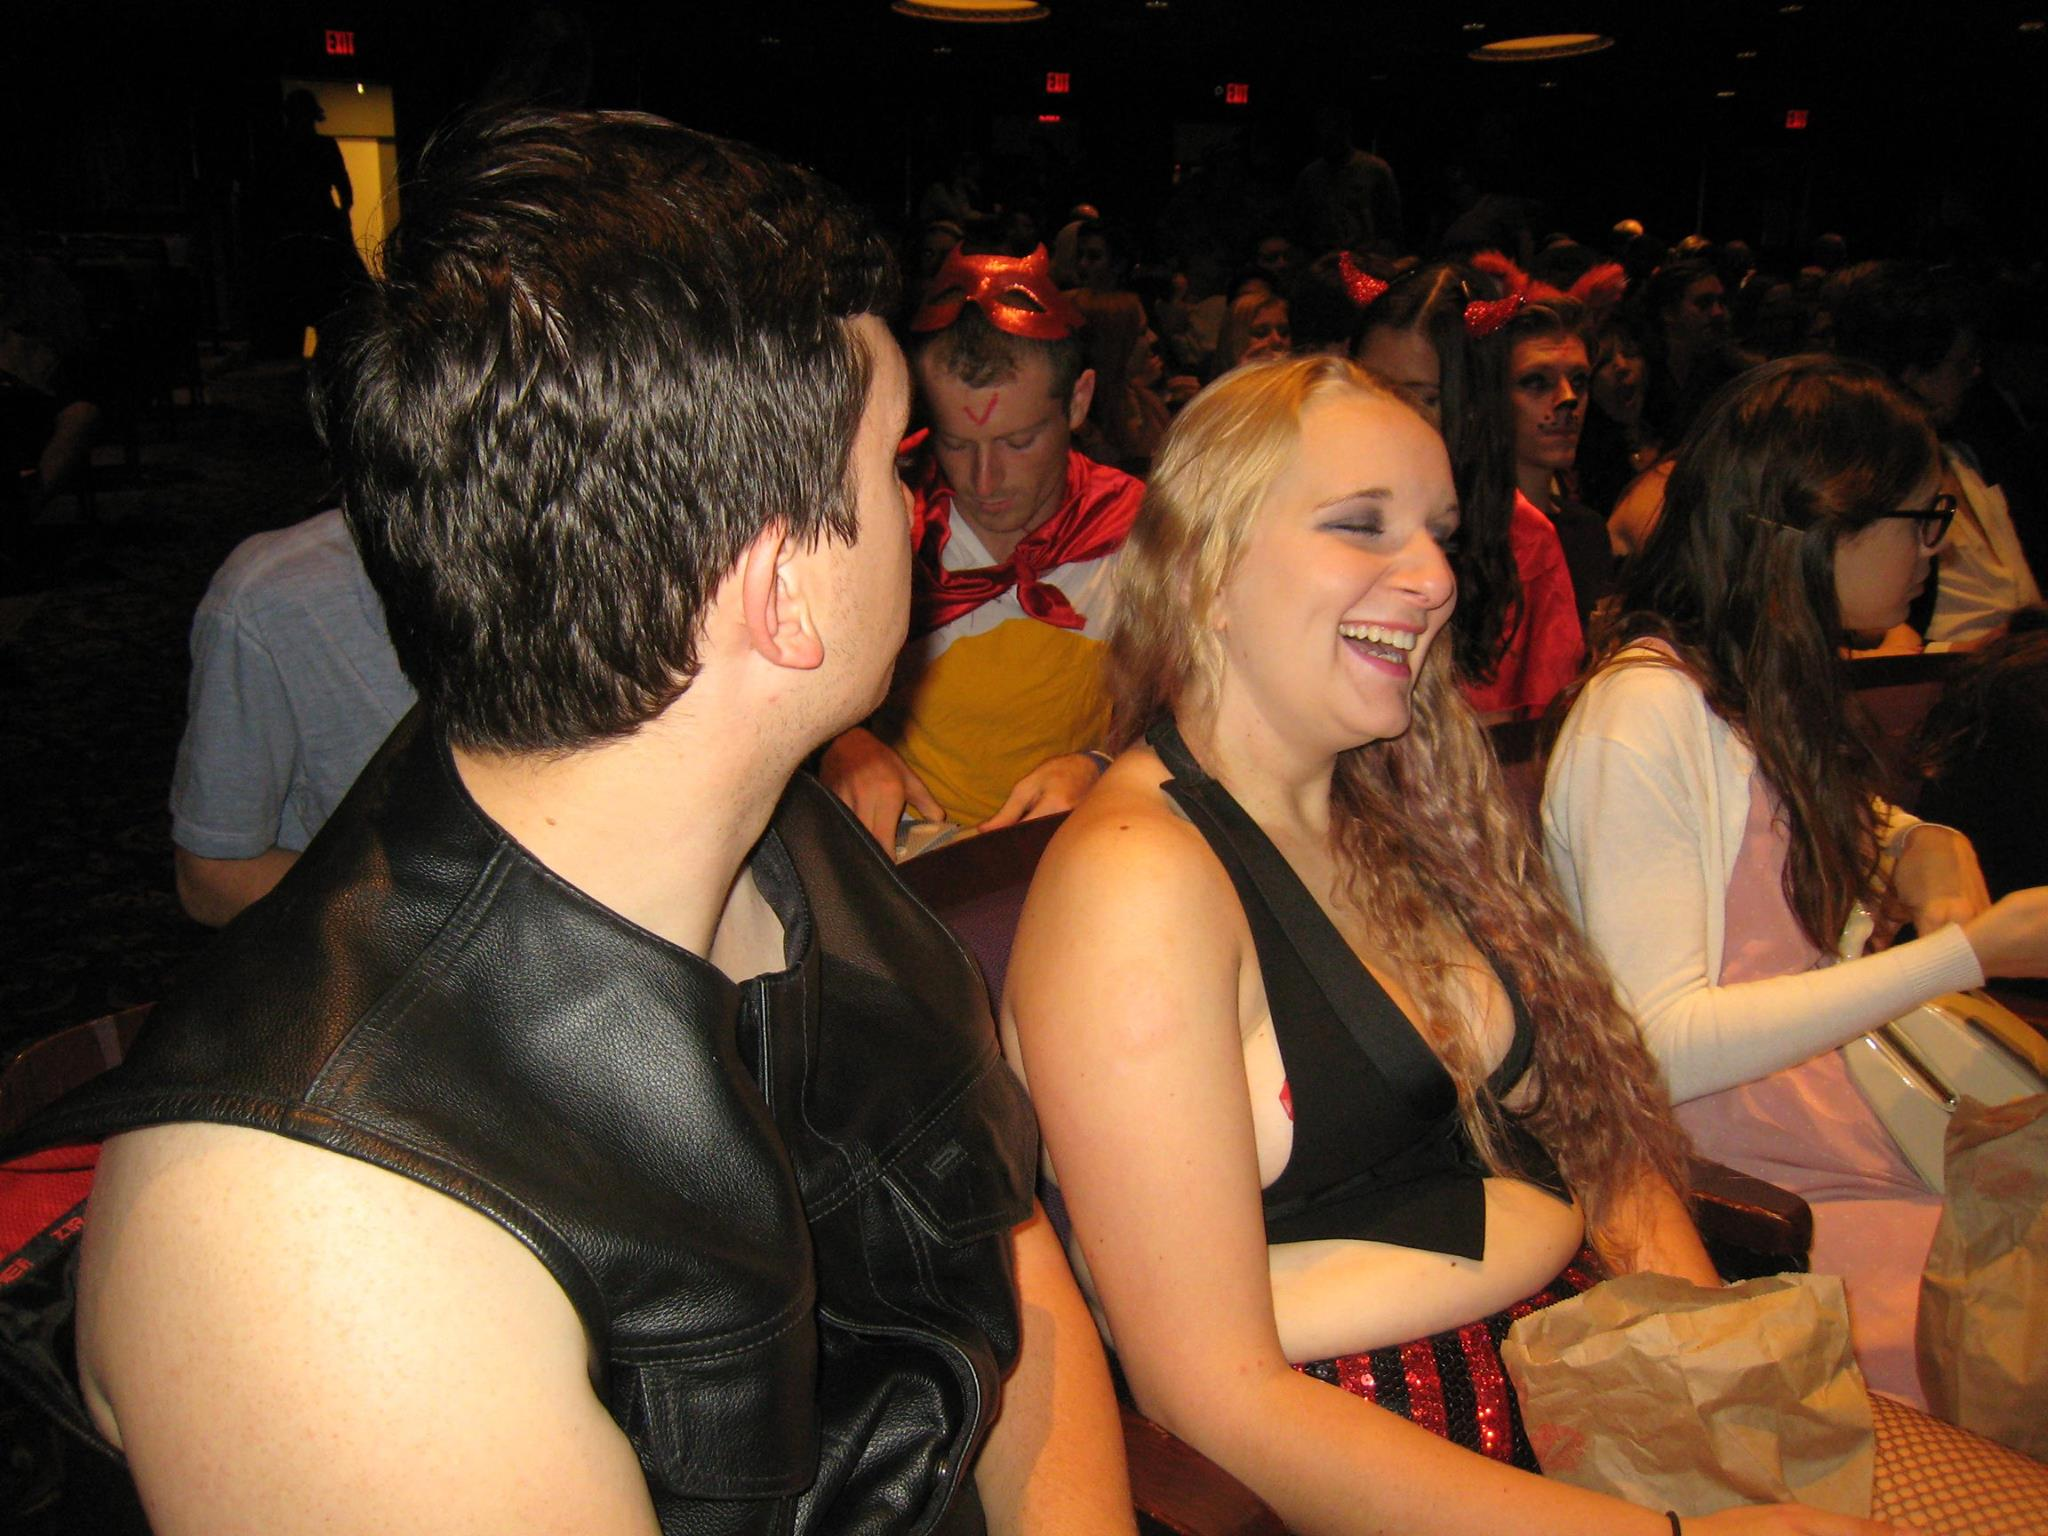 Rocky Horror Picture Show audience 1